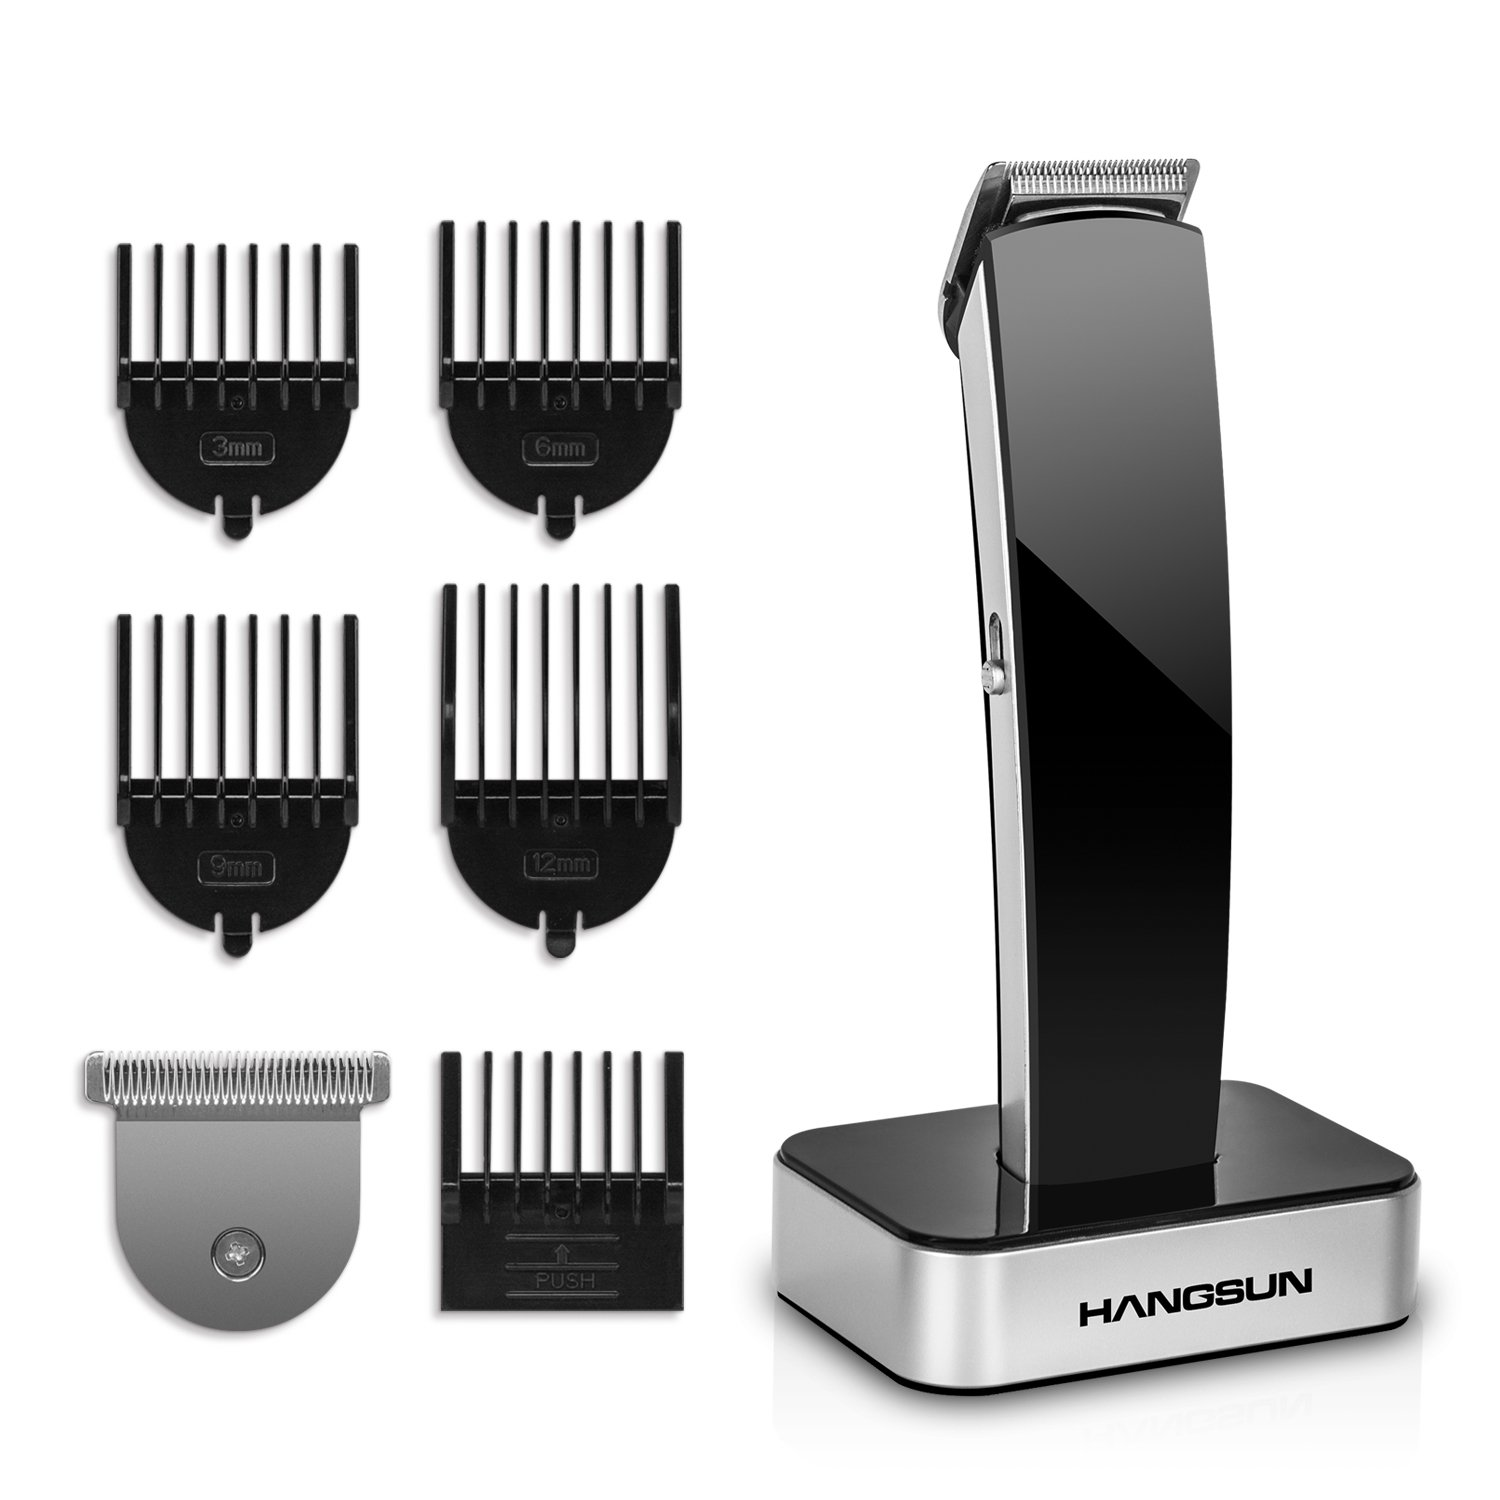 Hangsun Beard Trimmer Rechargeable HC360 Hair Trimmer Cordless Hair Clippers Electric Shaver Body Groomer Kit with Interchangeable T and U Blades, 5 Blade Combs, Cleaning Brush